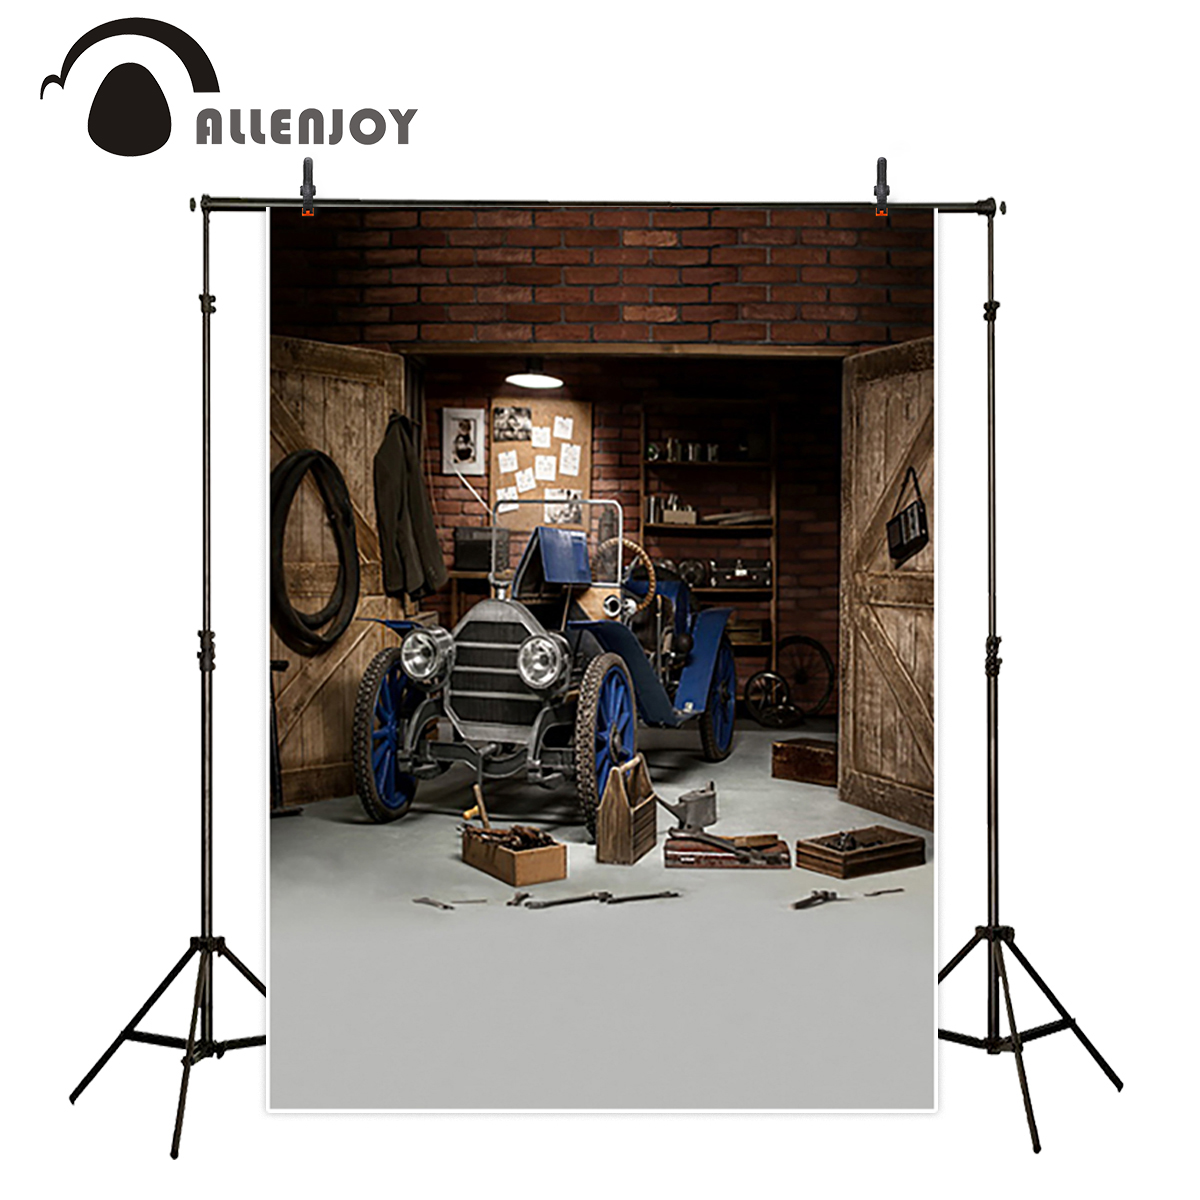 Allenjoy studio Photo background Dark blue repair vintage car red brick wall photocall photo background photography backdrop twister family board game that ties you up in knots